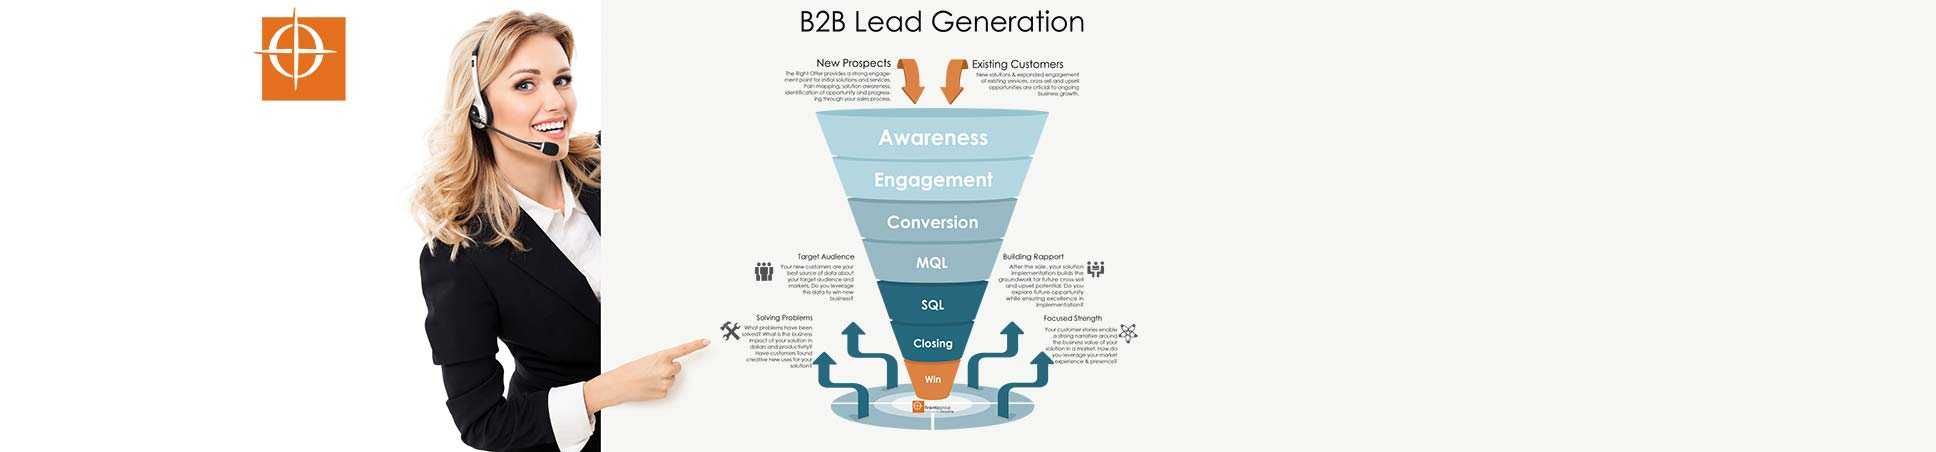 B2B Technology Lead Generation Campaigns for Software, ERP, and Consulting